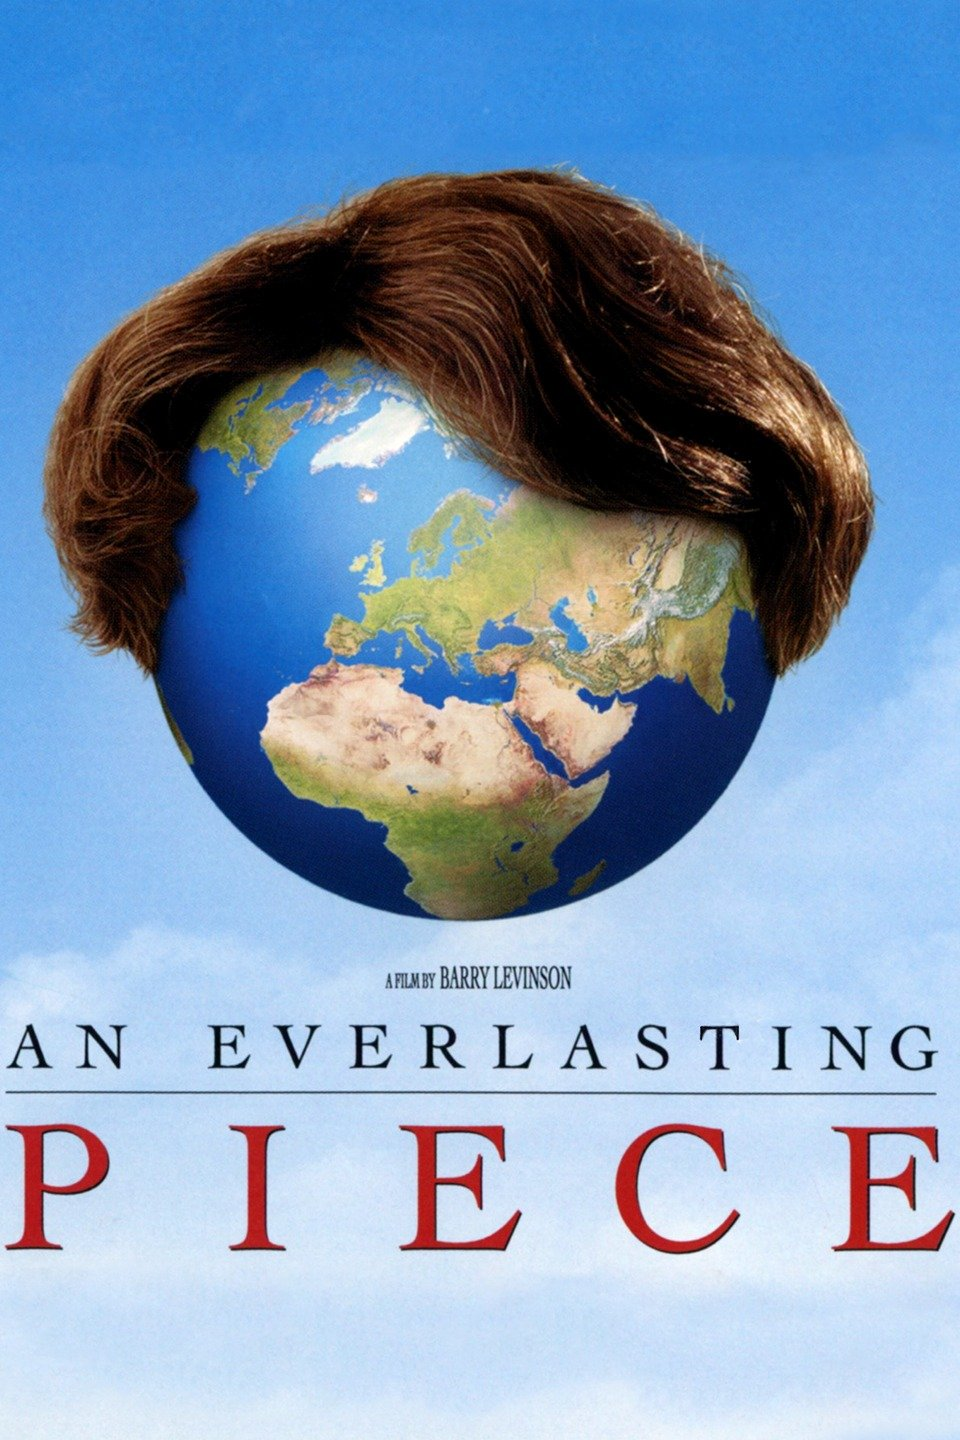 An Everlasting Piece (2000)